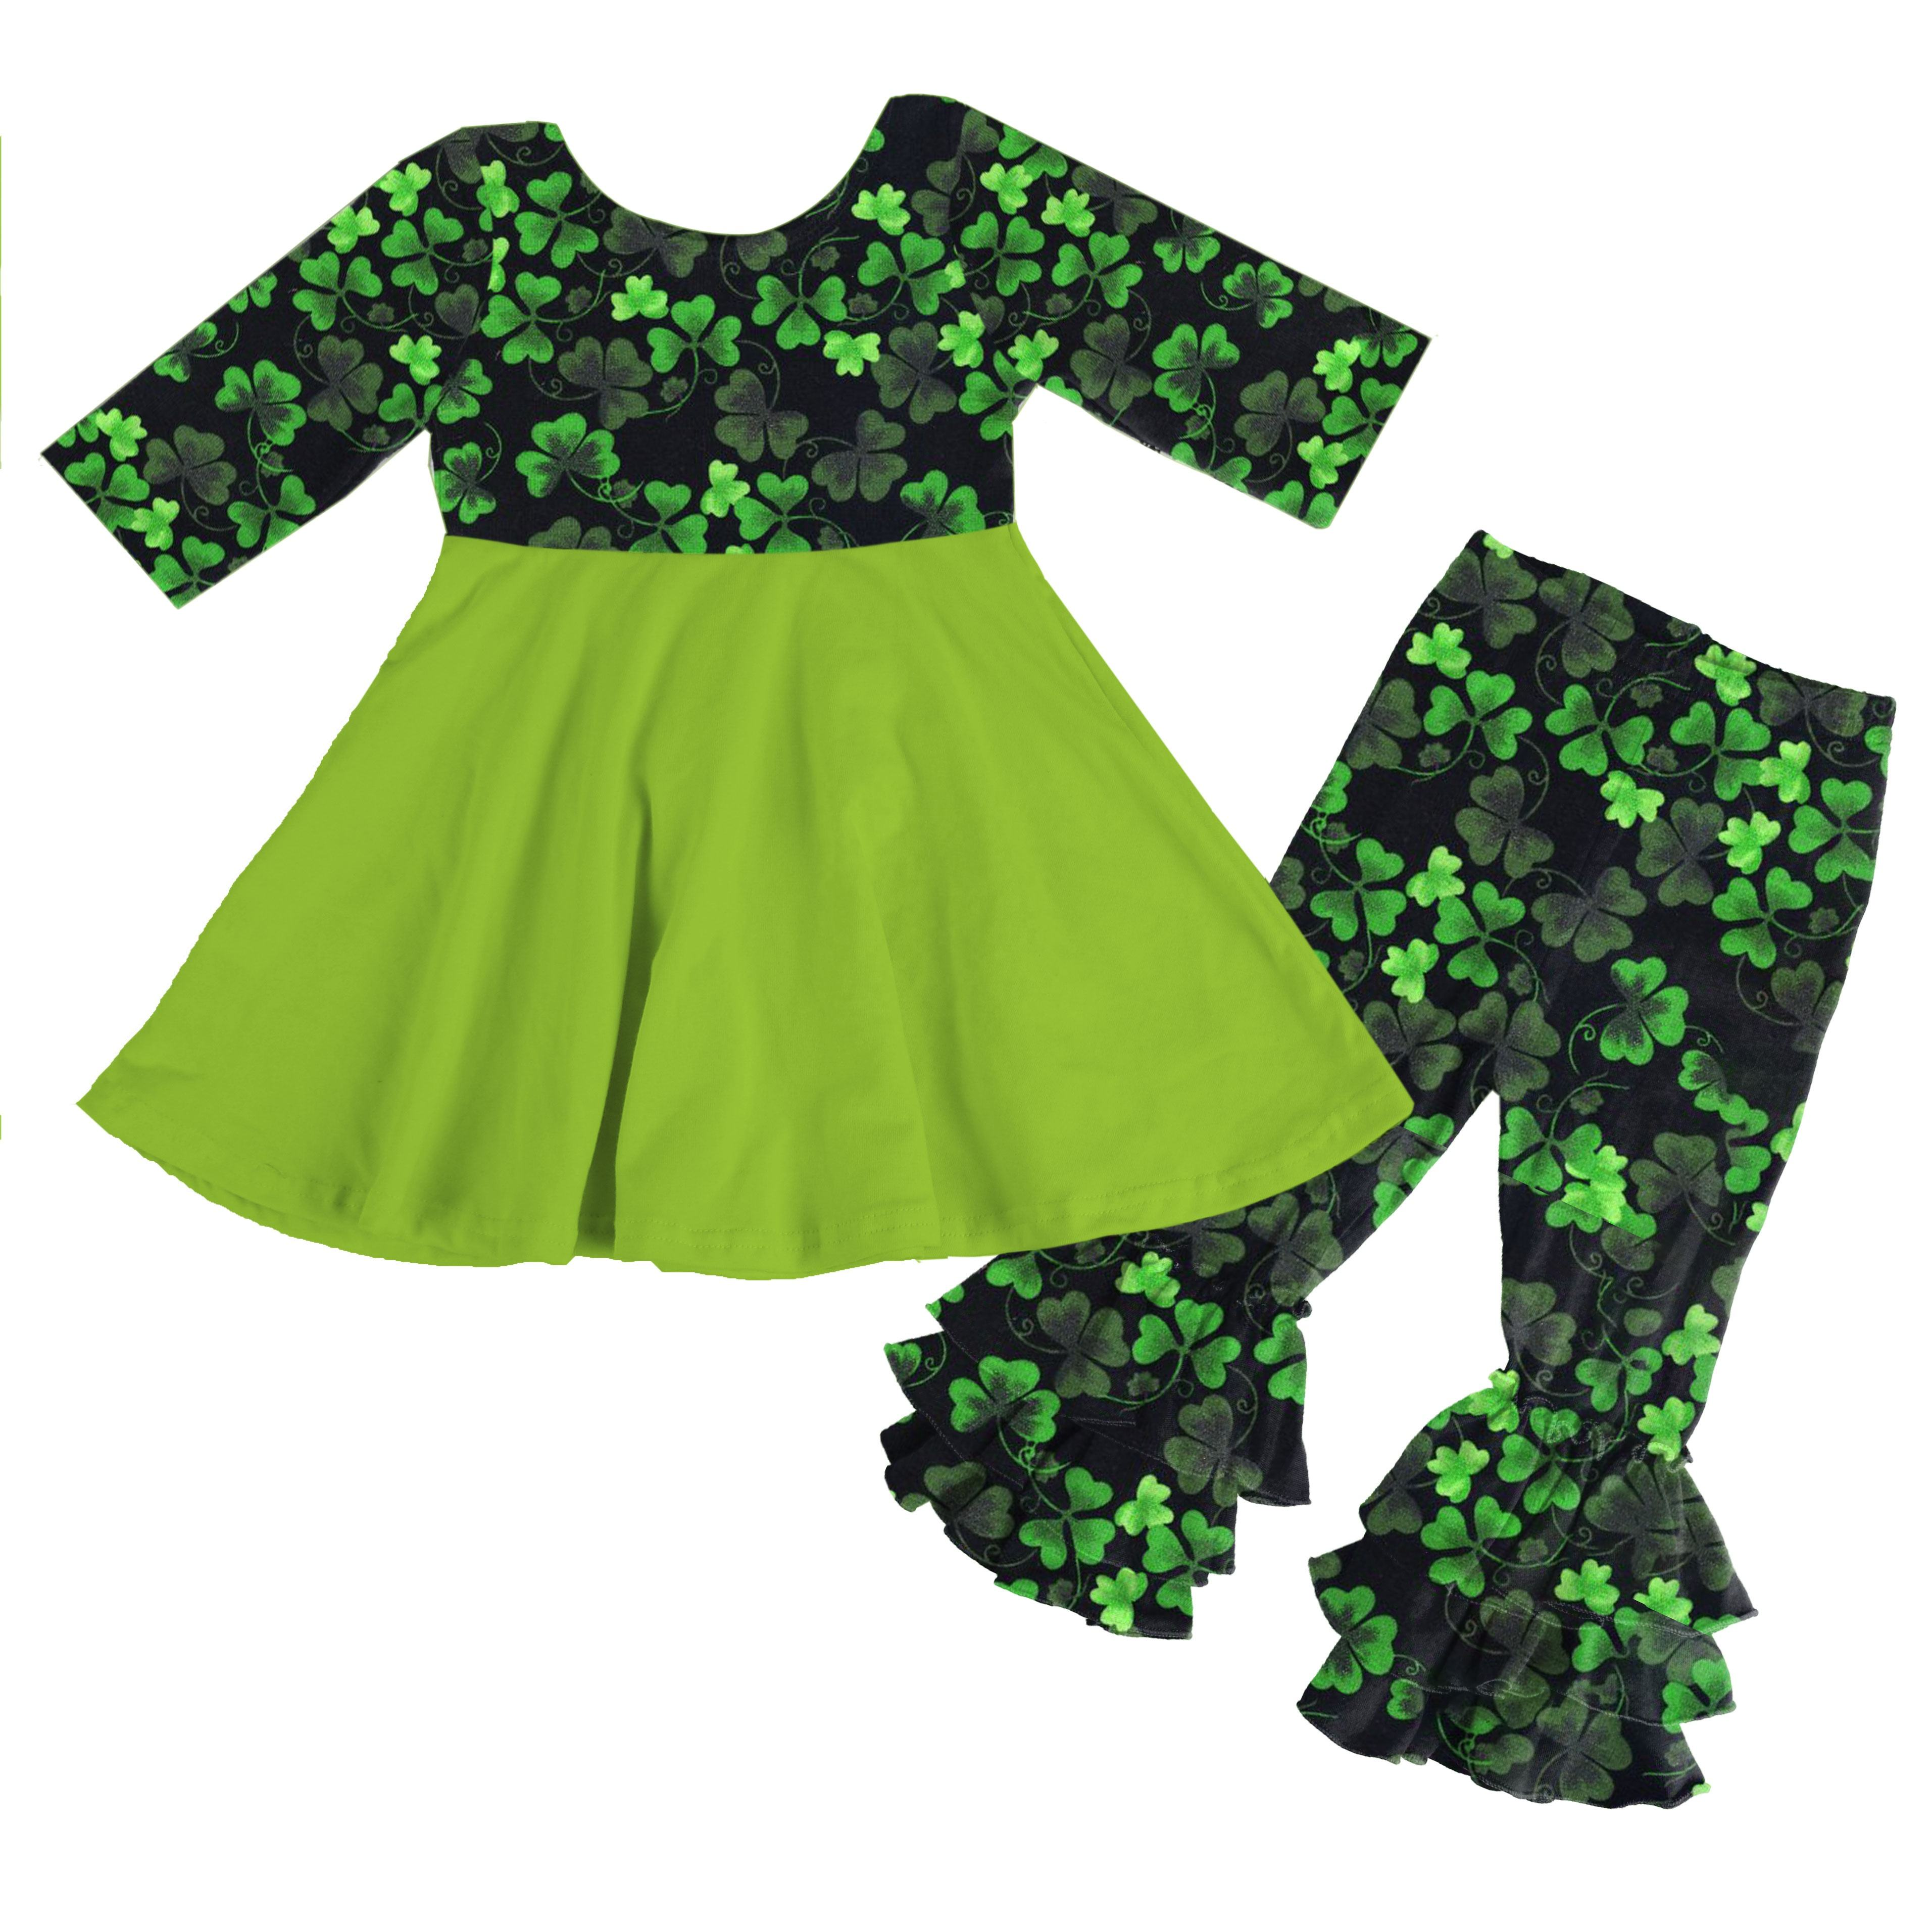 Neue design icing rüsche boutique outfits Großhandel St. patricks Tag baby mädchen outfit mit Vier-blatt <span class=keywords><strong>klee</strong></span>